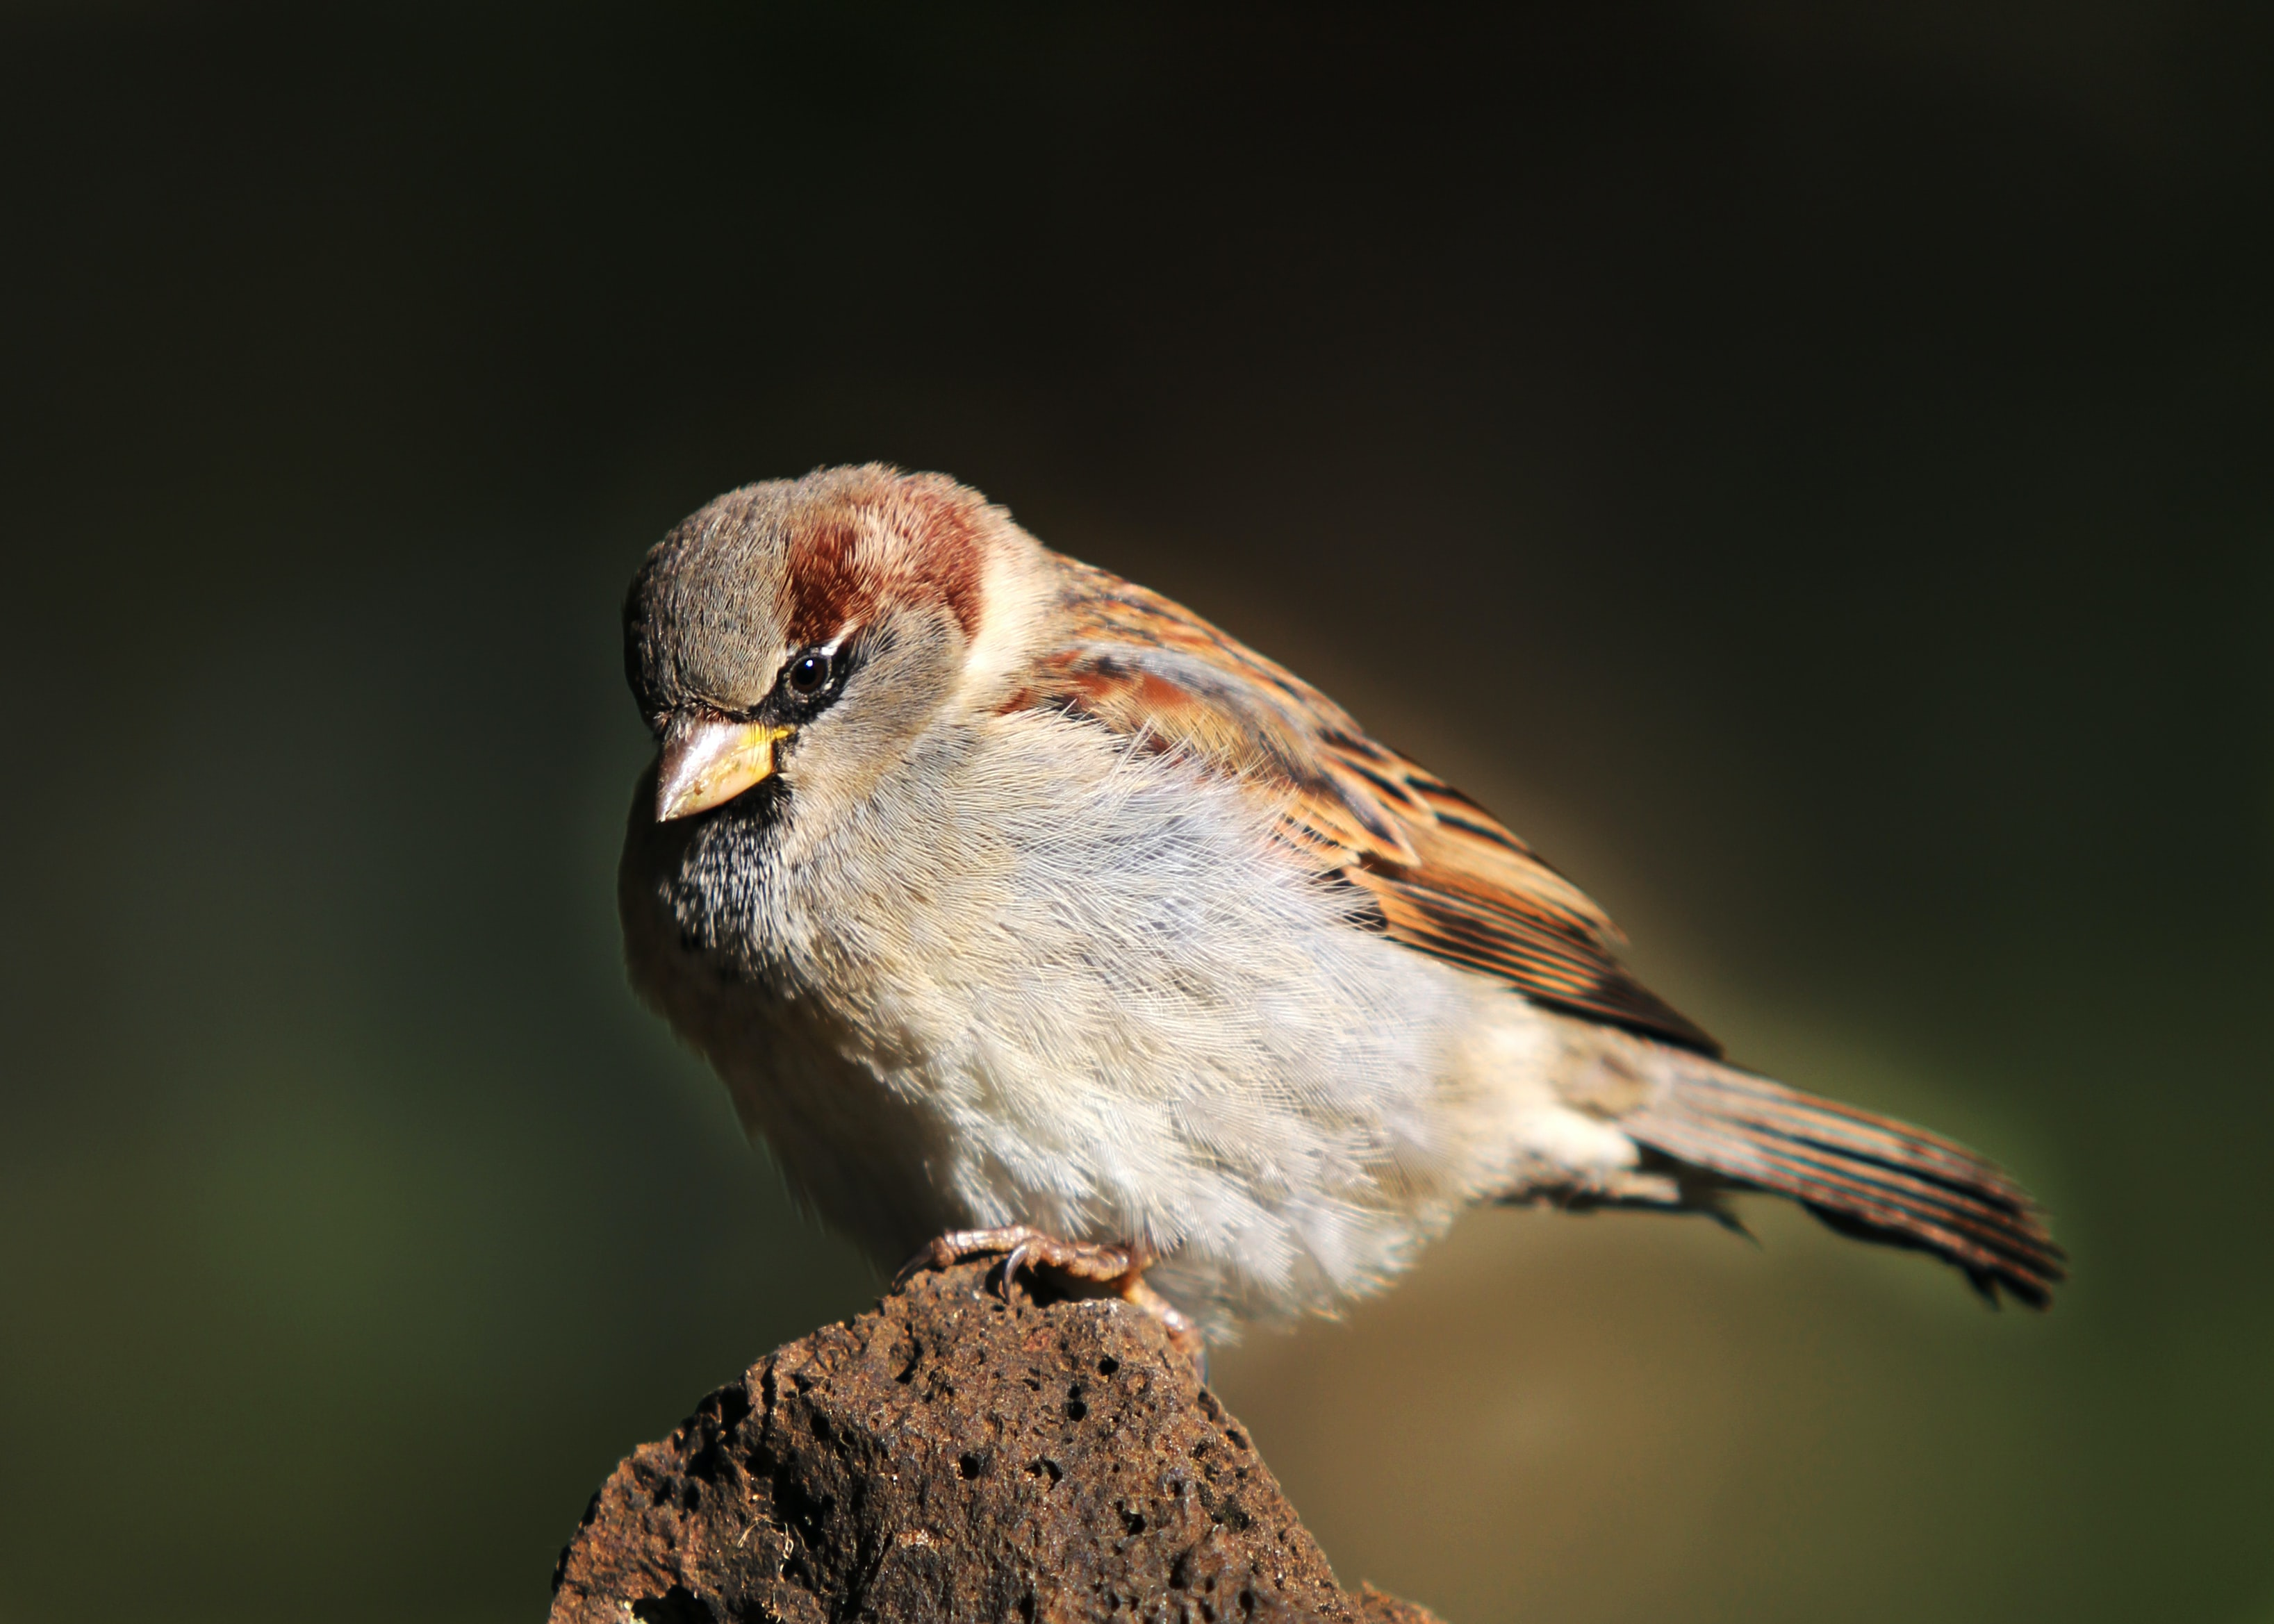 brown and white bird perched on rock in close-up photography